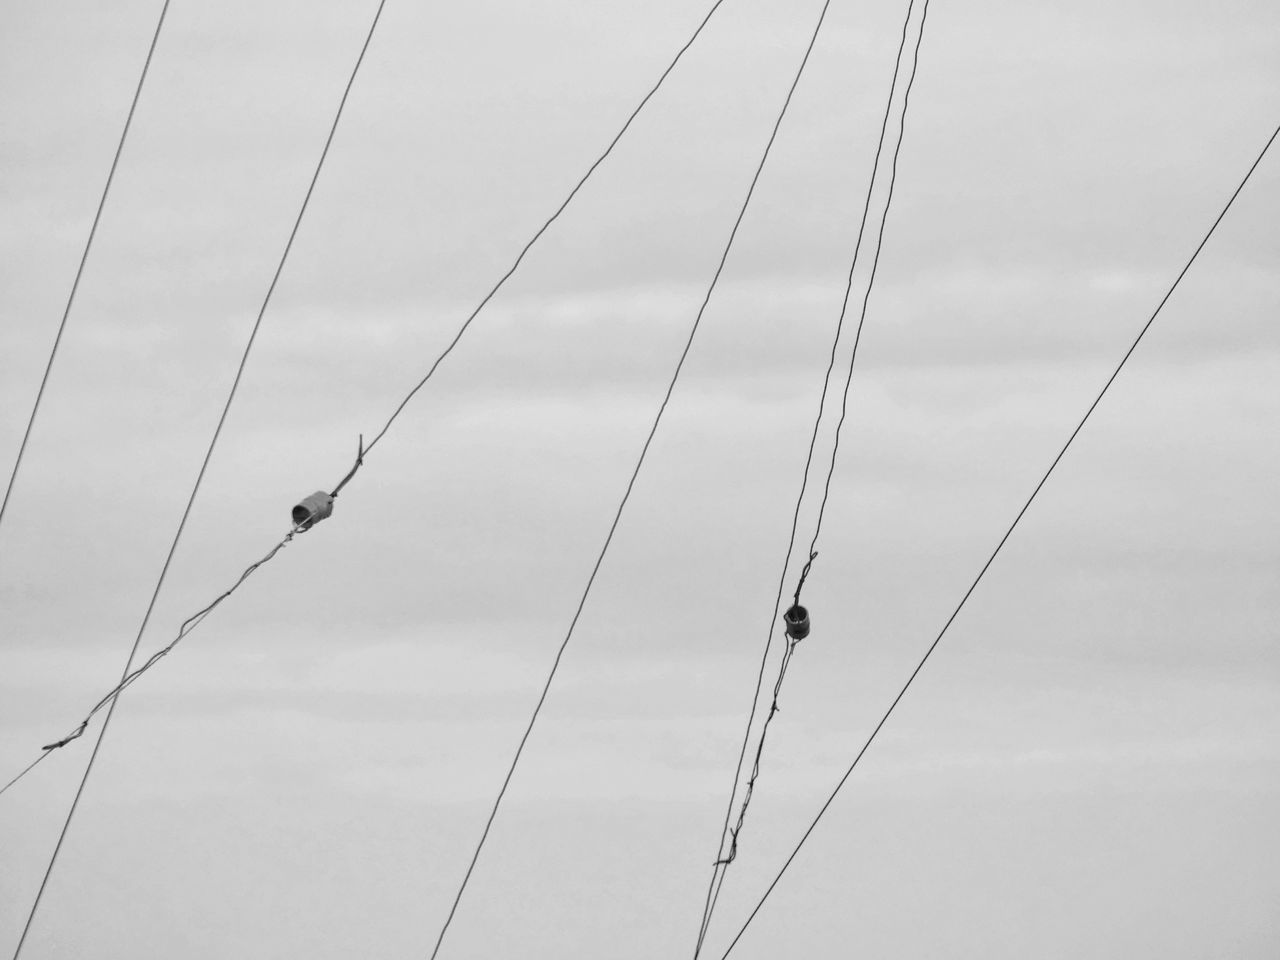 cable, bird, animals in the wild, low angle view, animal themes, power line, animal wildlife, one animal, day, perching, outdoors, power supply, electricity, sky, nature, telephone line, no people